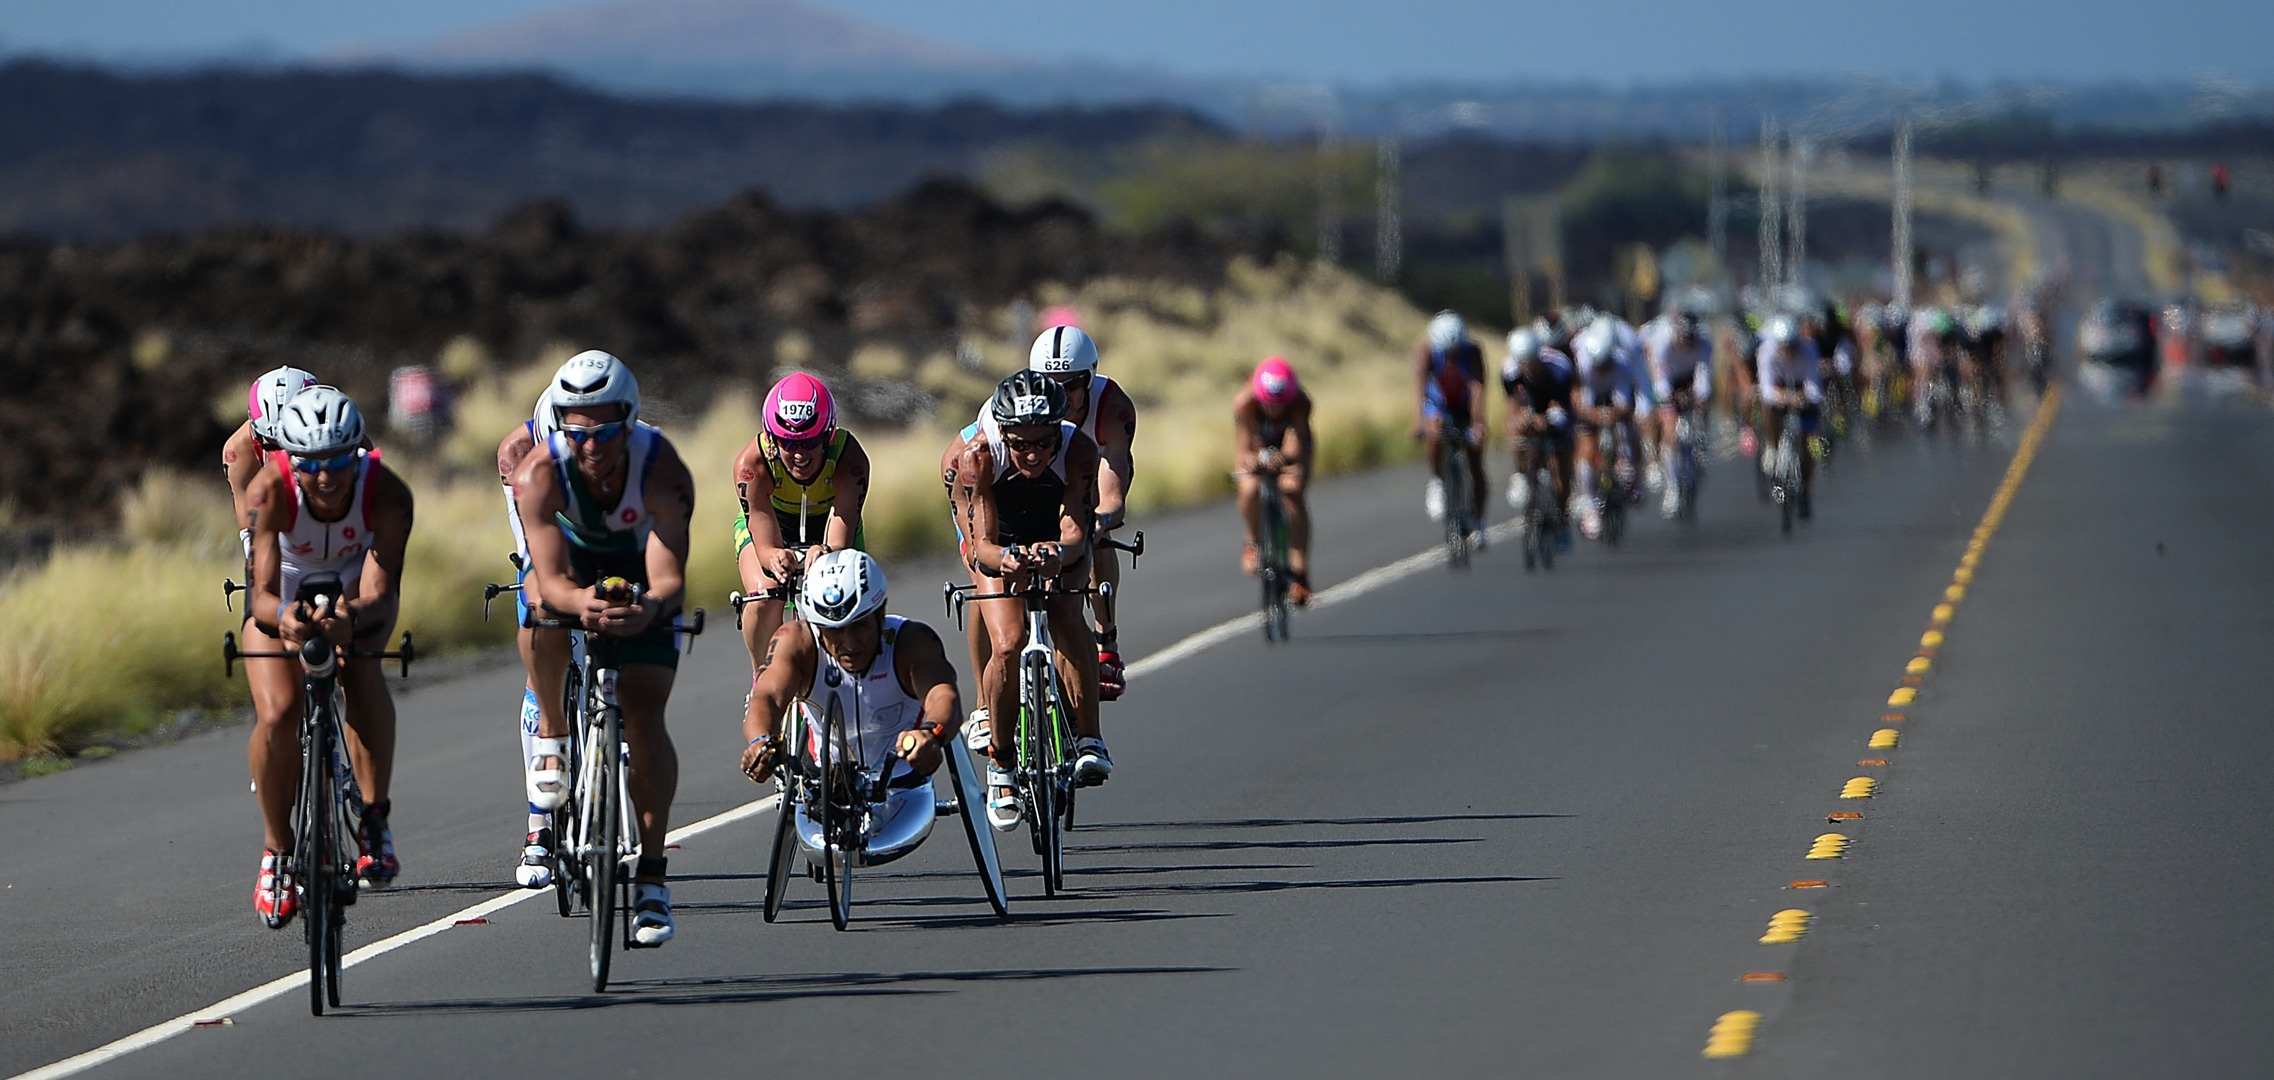 Alex Zanardi Finishes 140 Mile Triathlon Using Only His